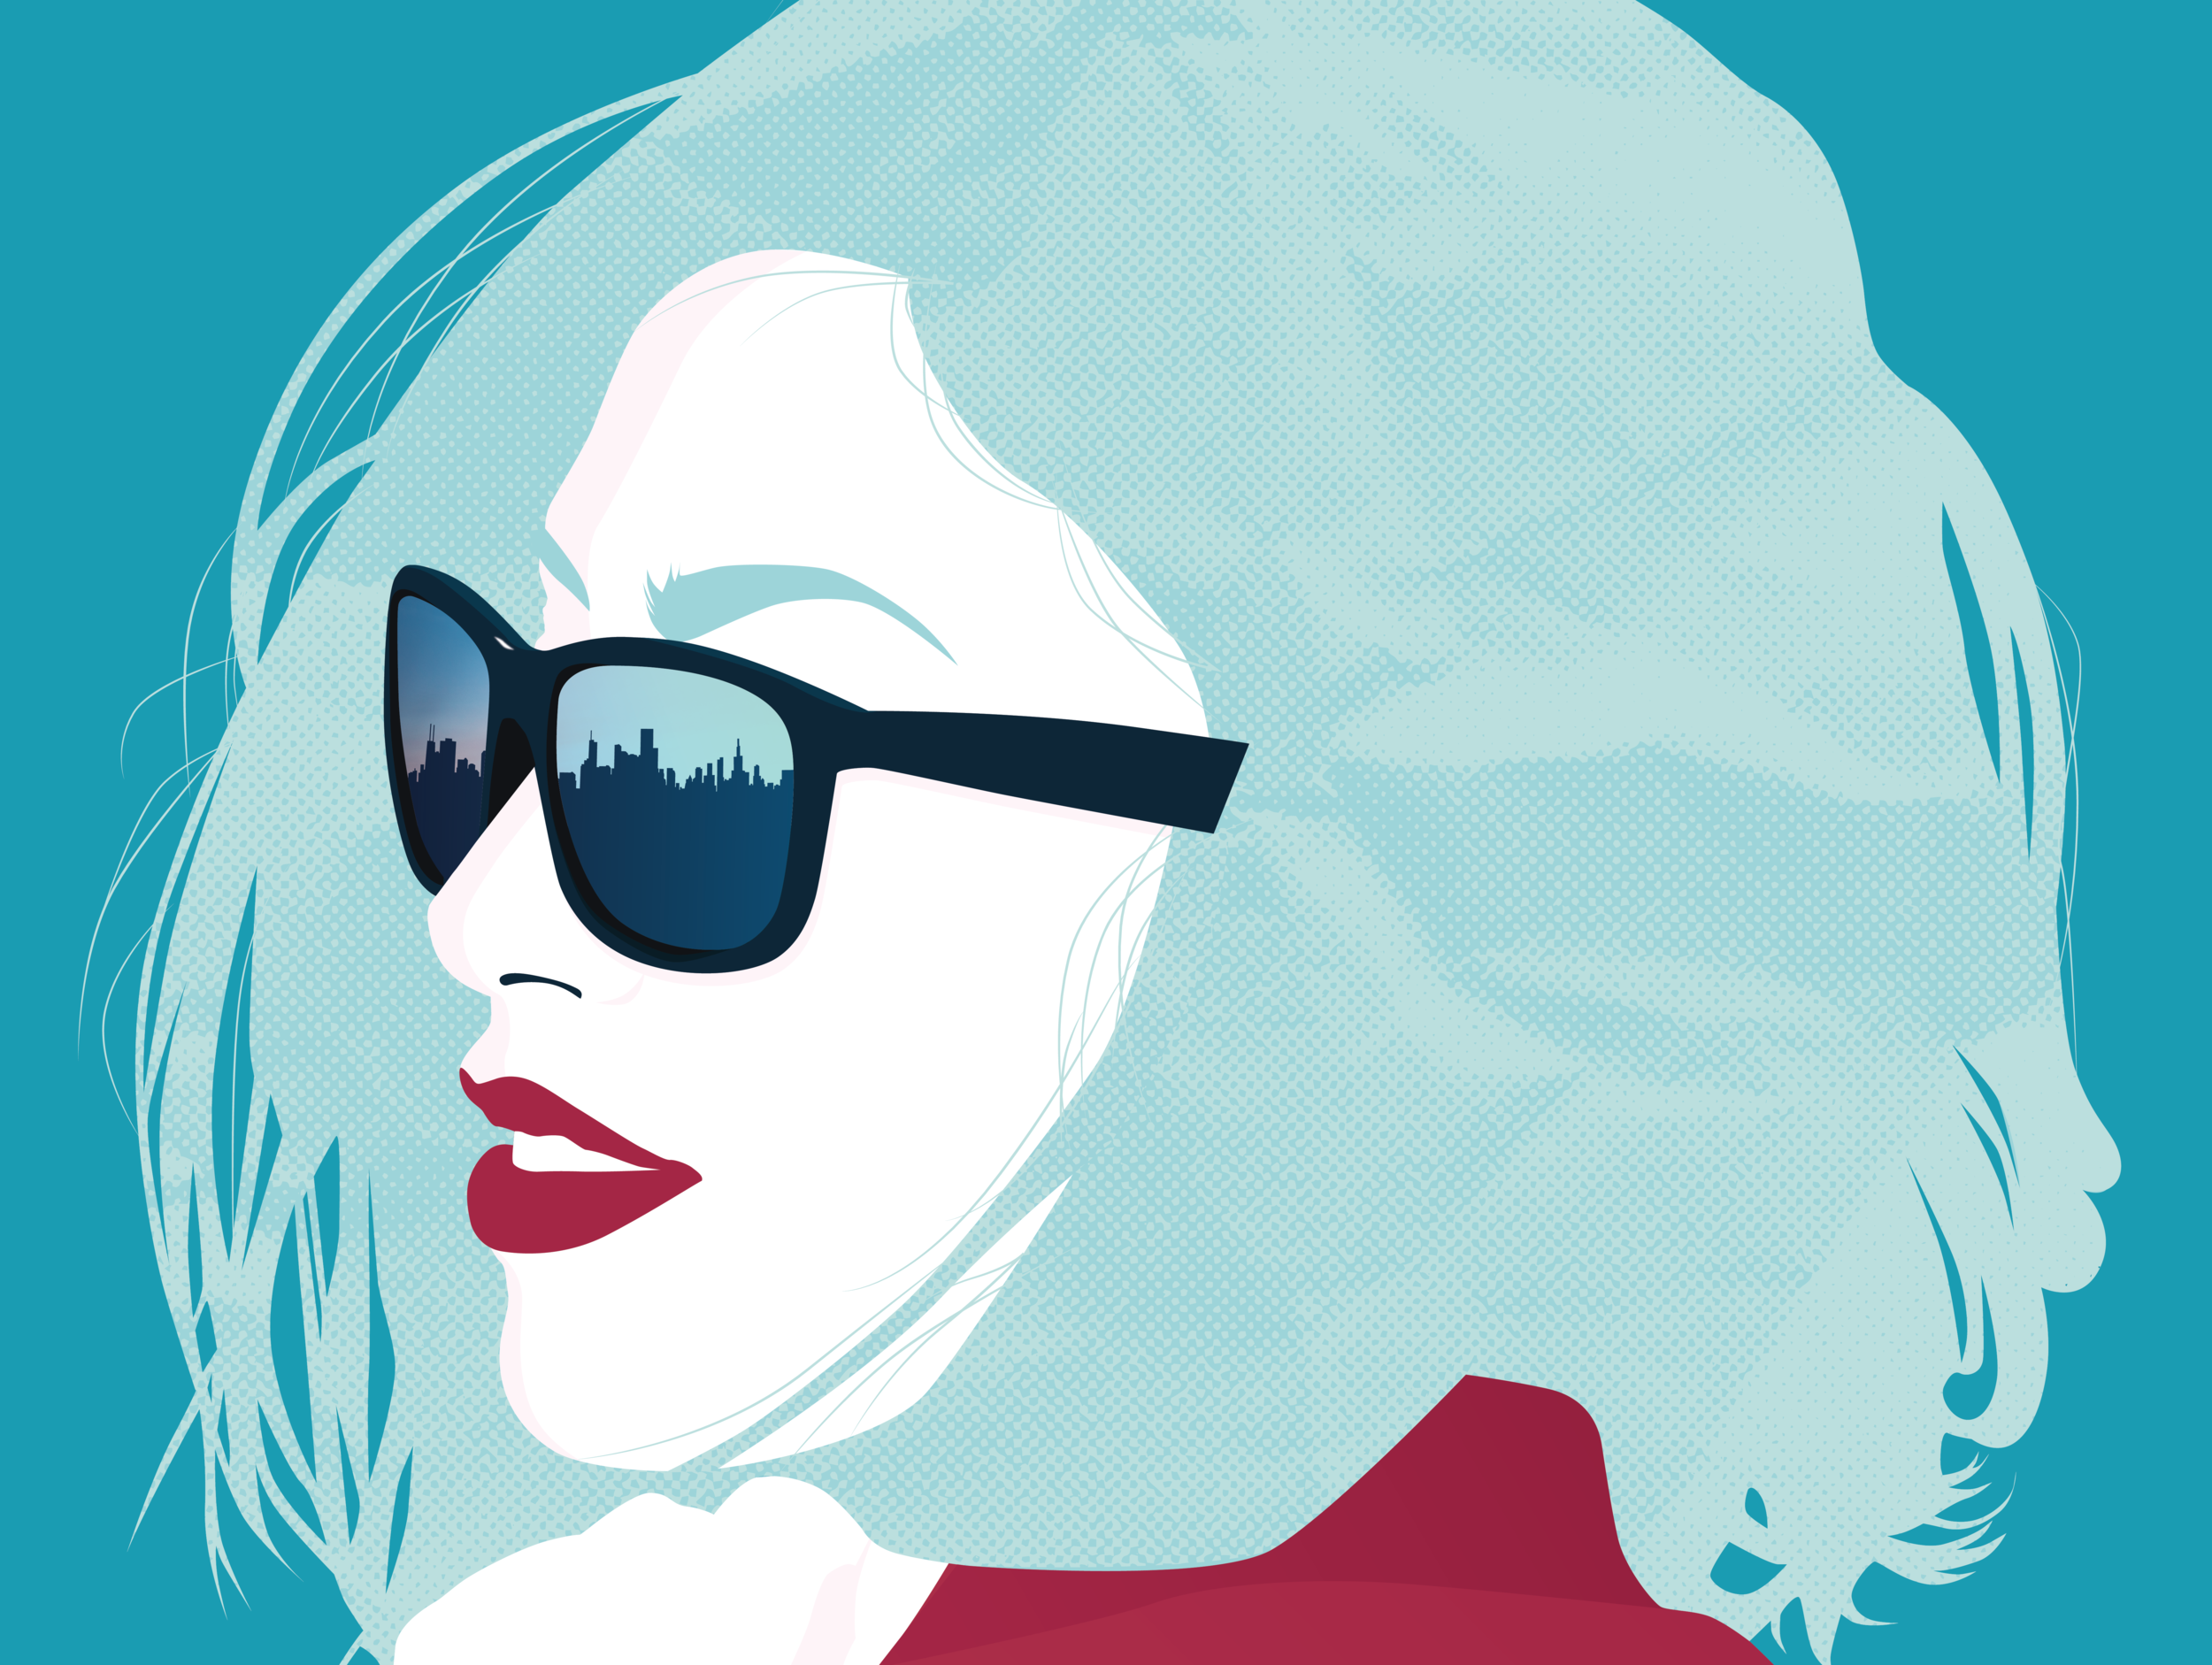 Woman in Sunglasses-01.png